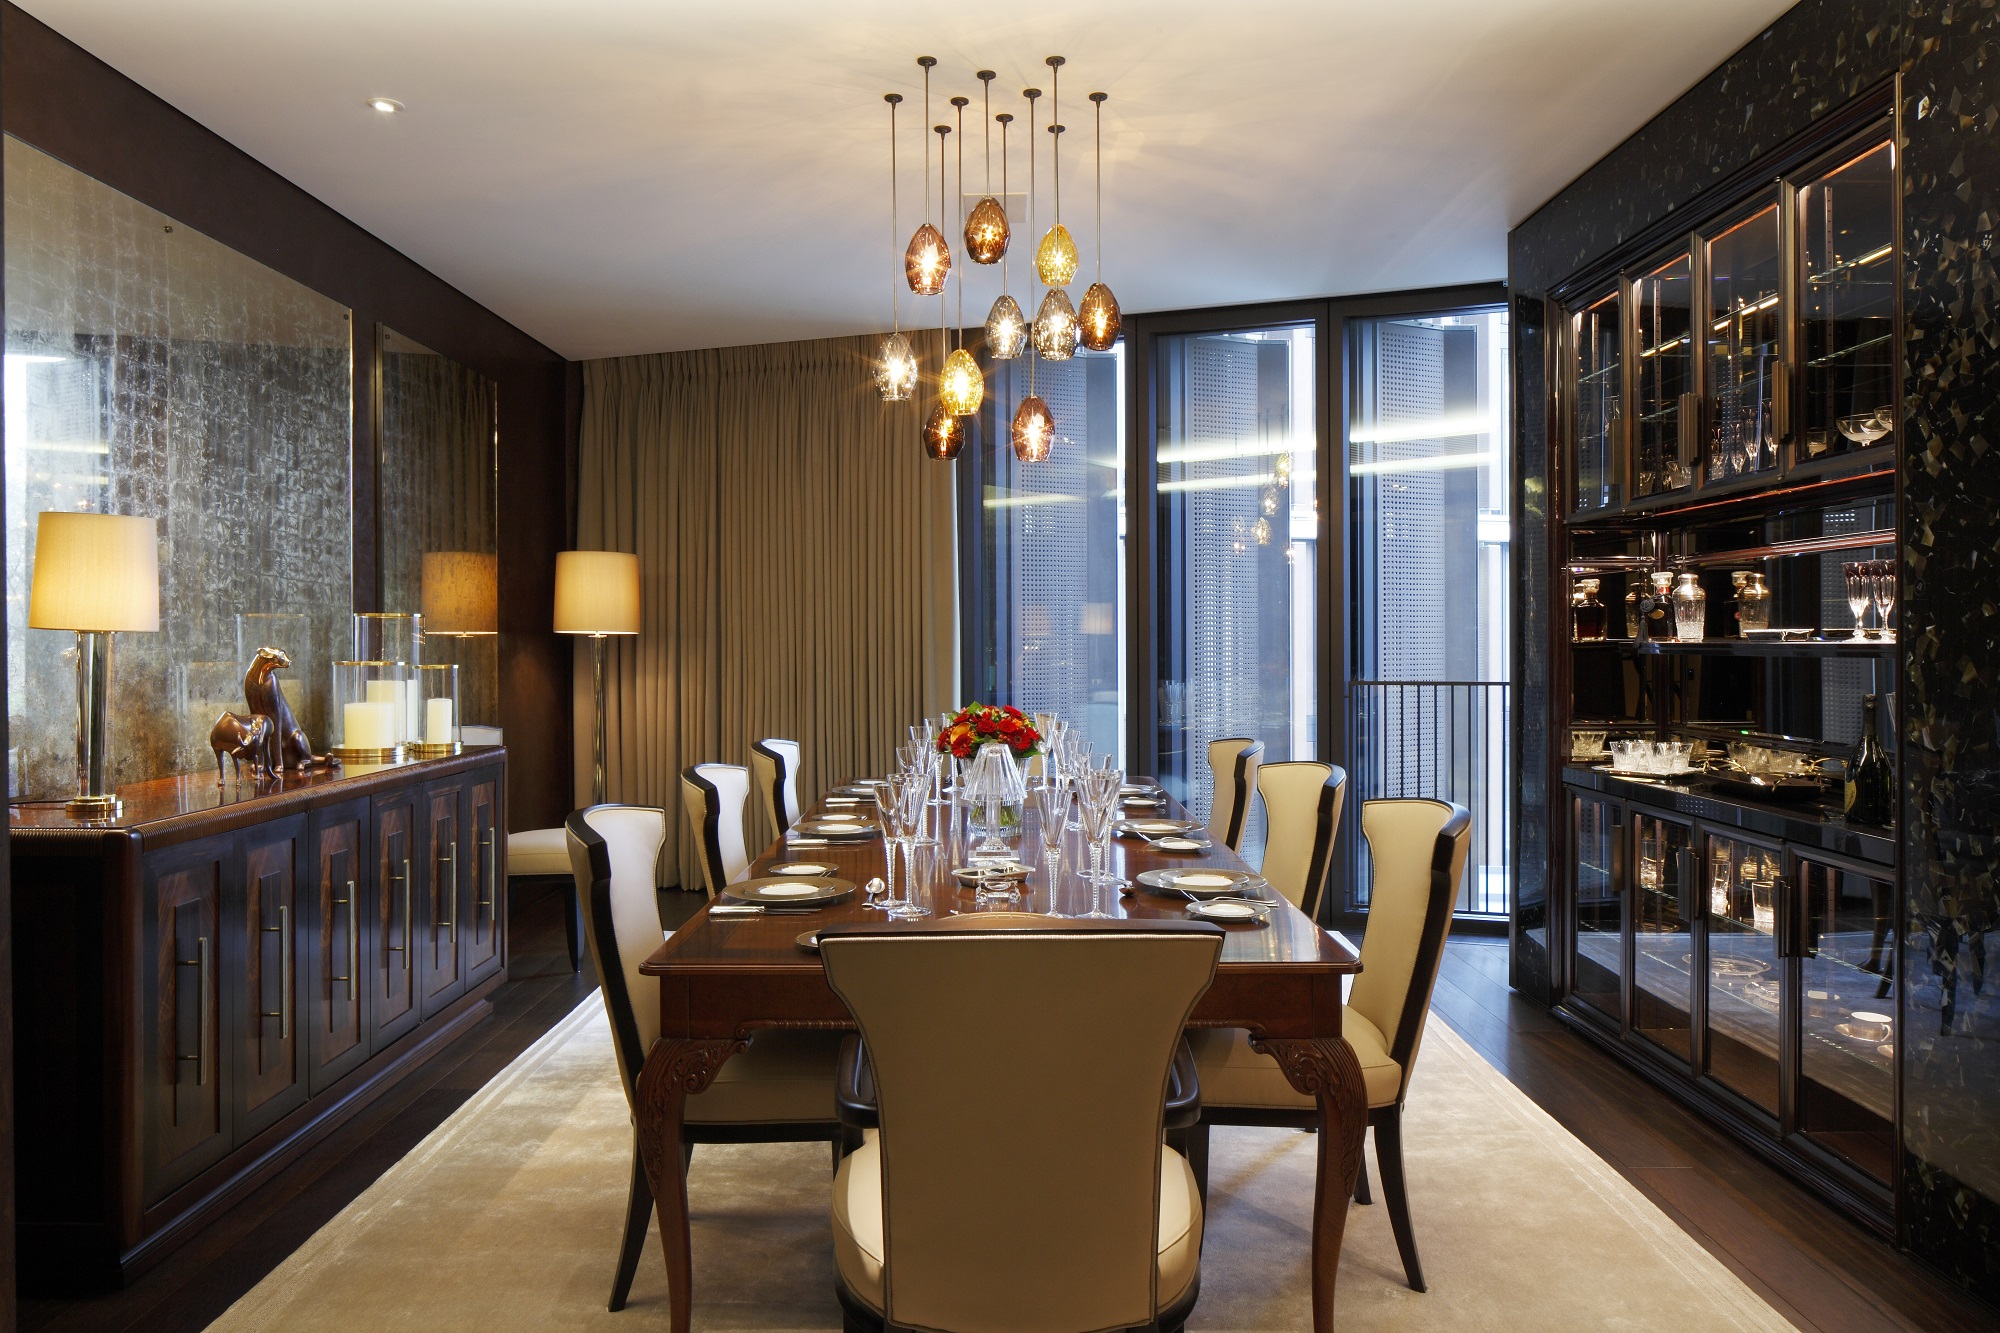 Home Interior Design Dining Room 32 Stylish Dining Room Ideas To Impress Your Dinner Guests